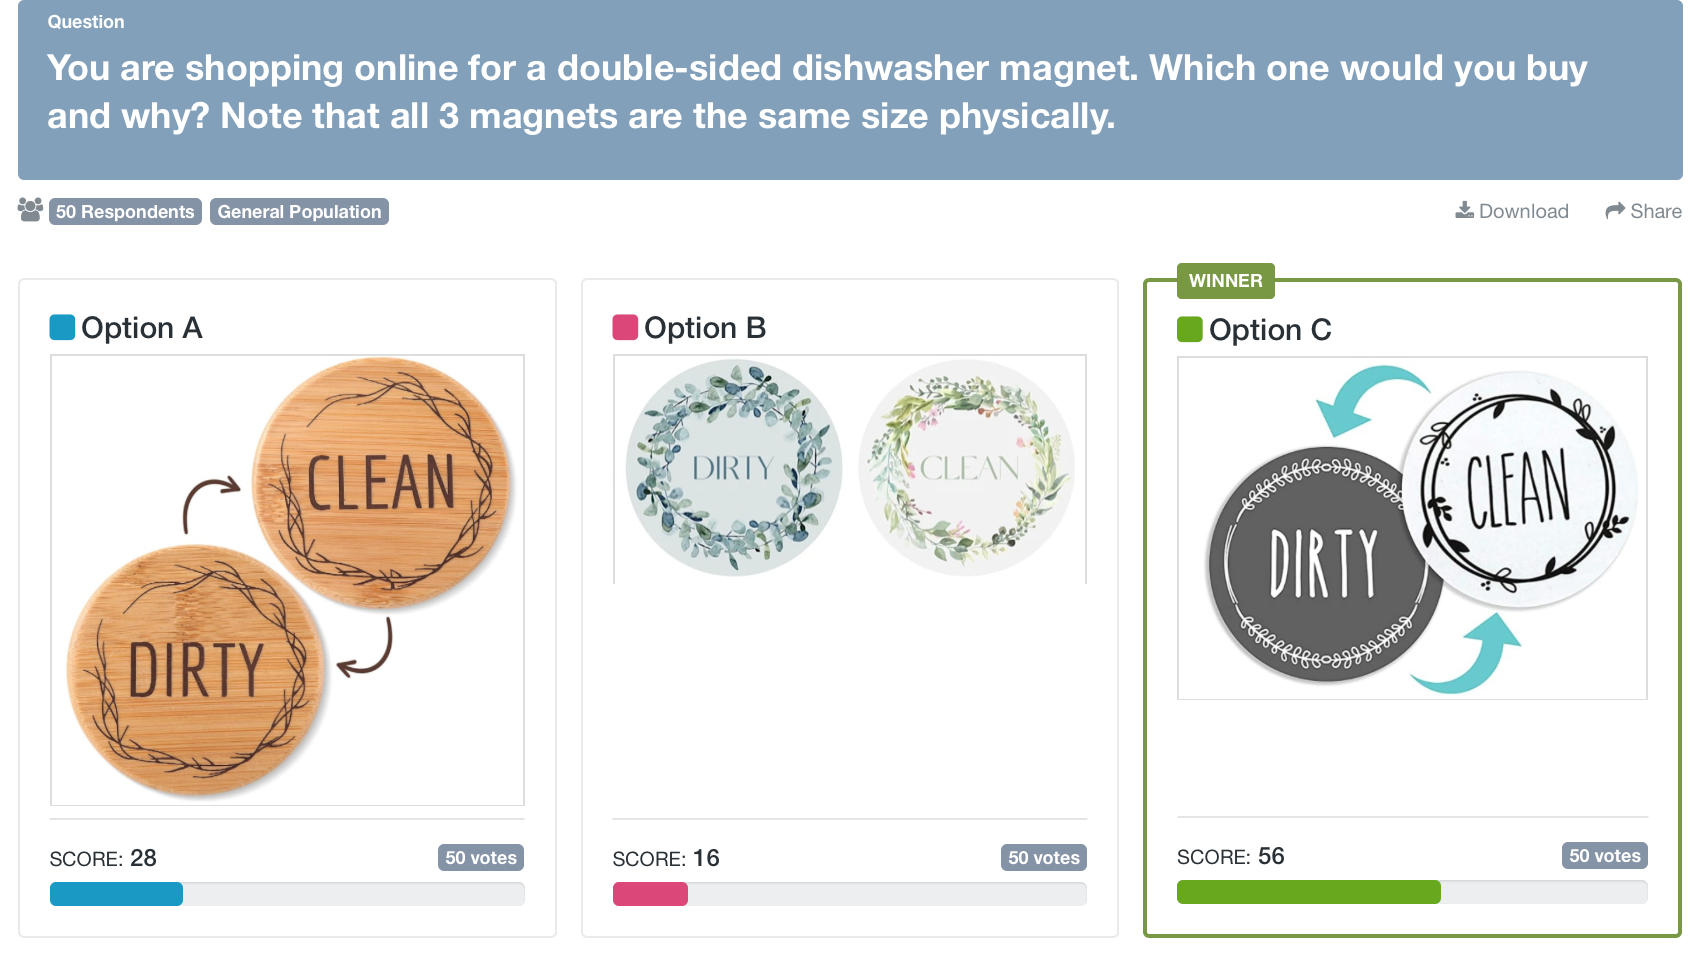 DIY market research: Screenshot of PickFu poll asking respondents for feedback on a dishwasher magnet design